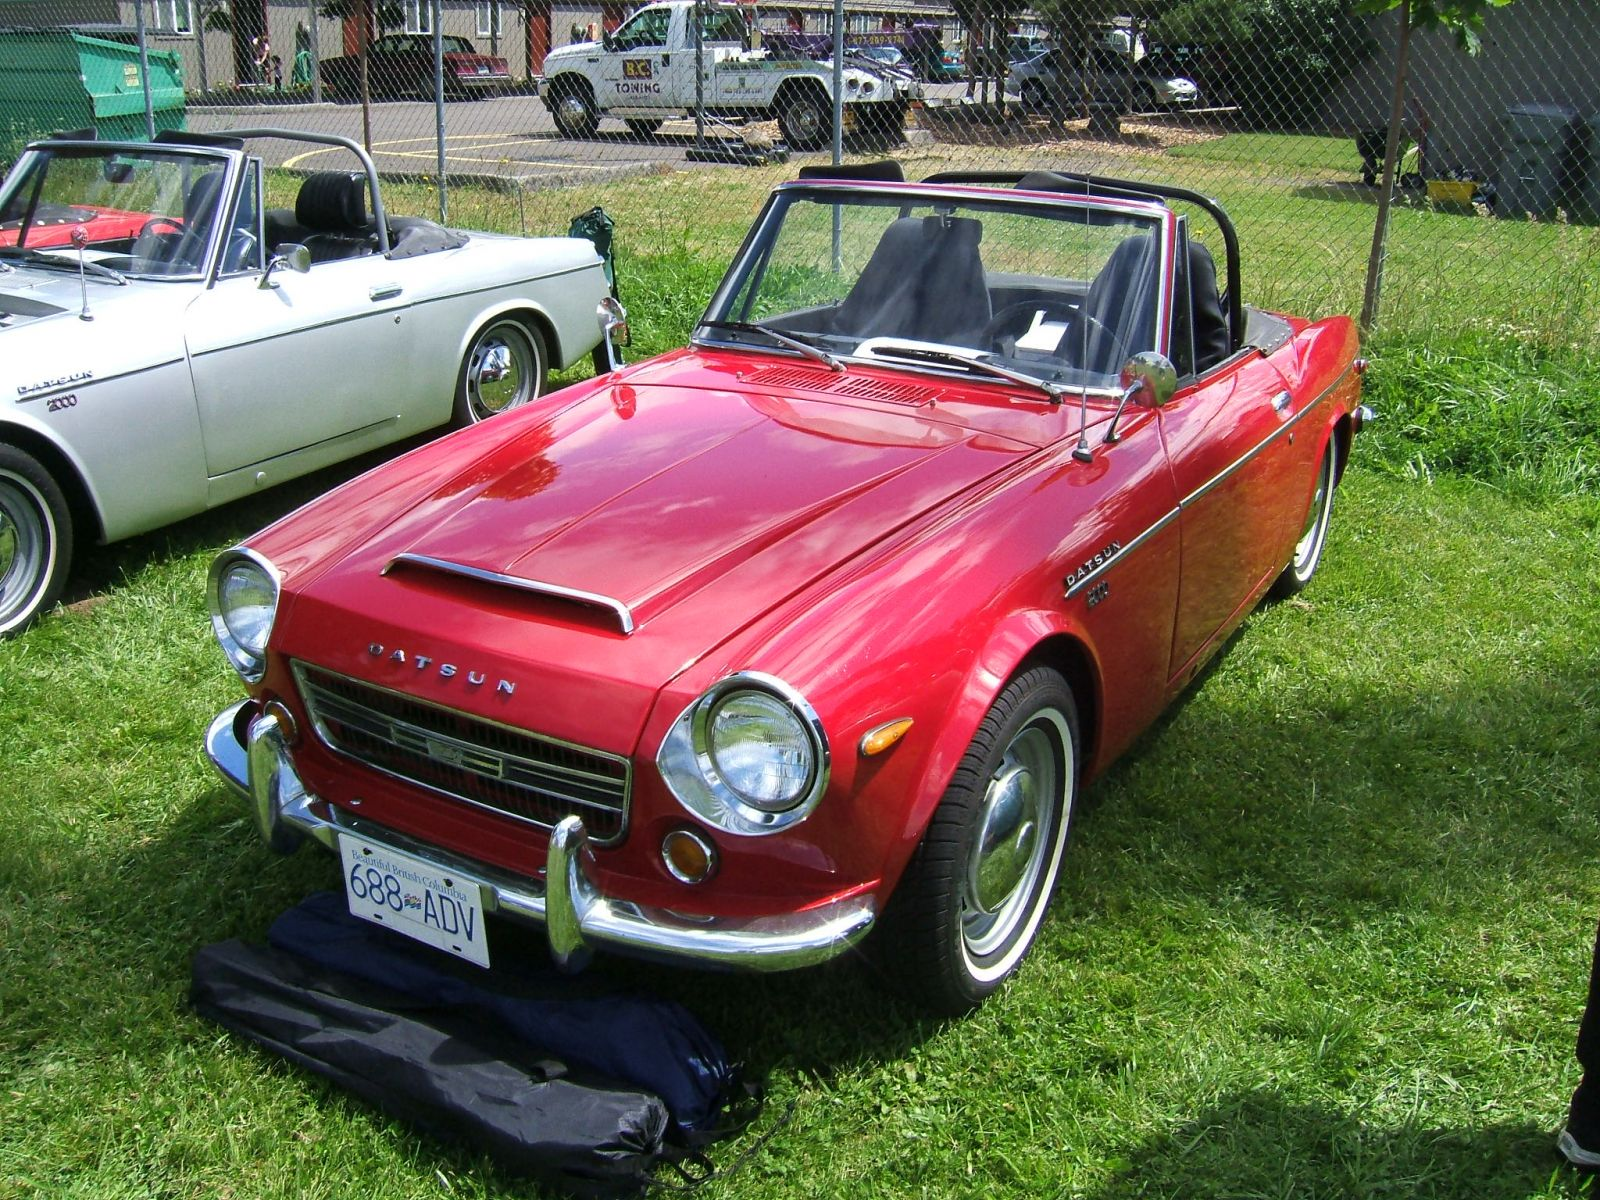 CANBY_ROADSTER_23_2005